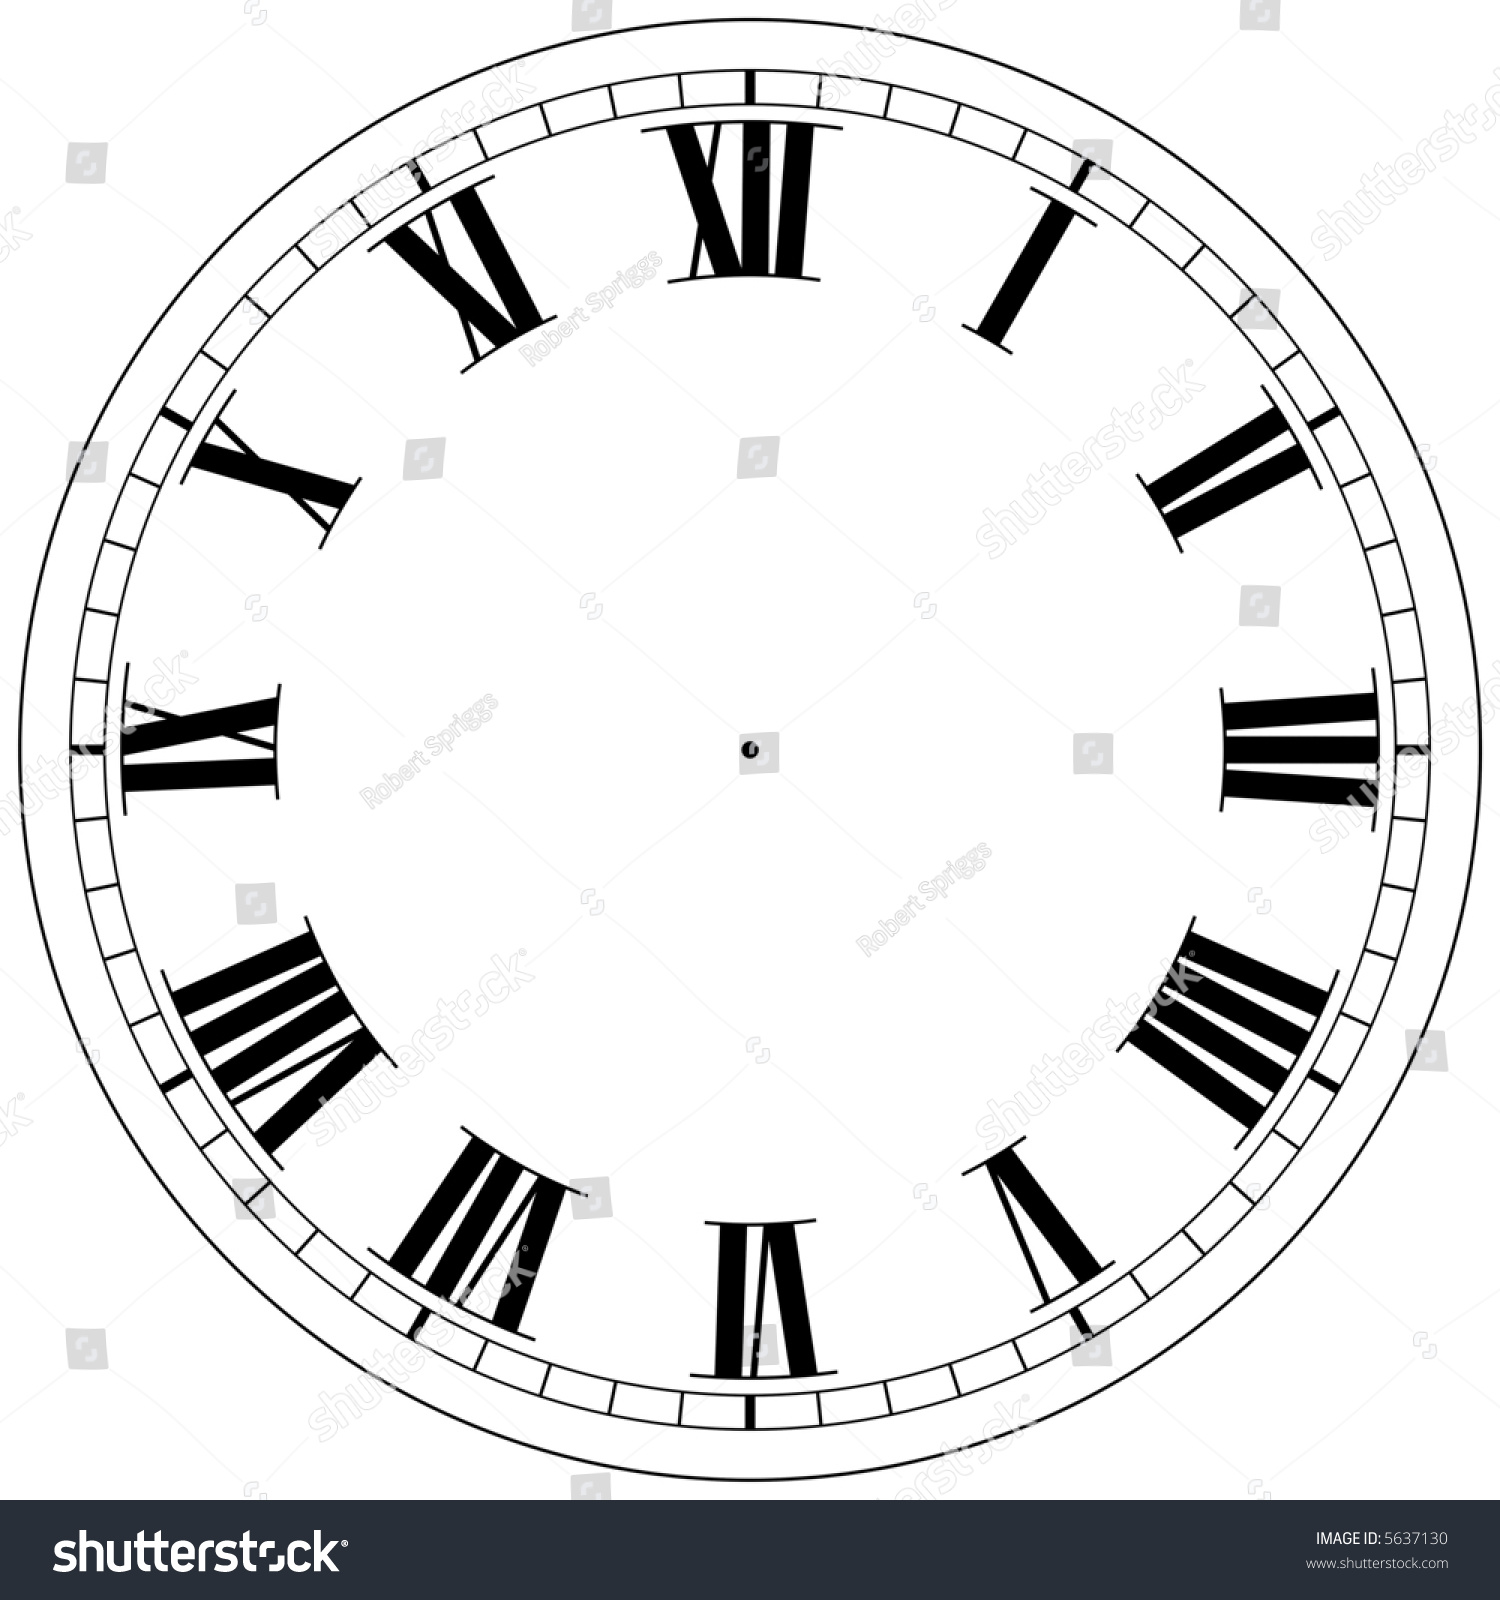 Precision Roman Clock Face Template Stock Photo Shutterstock